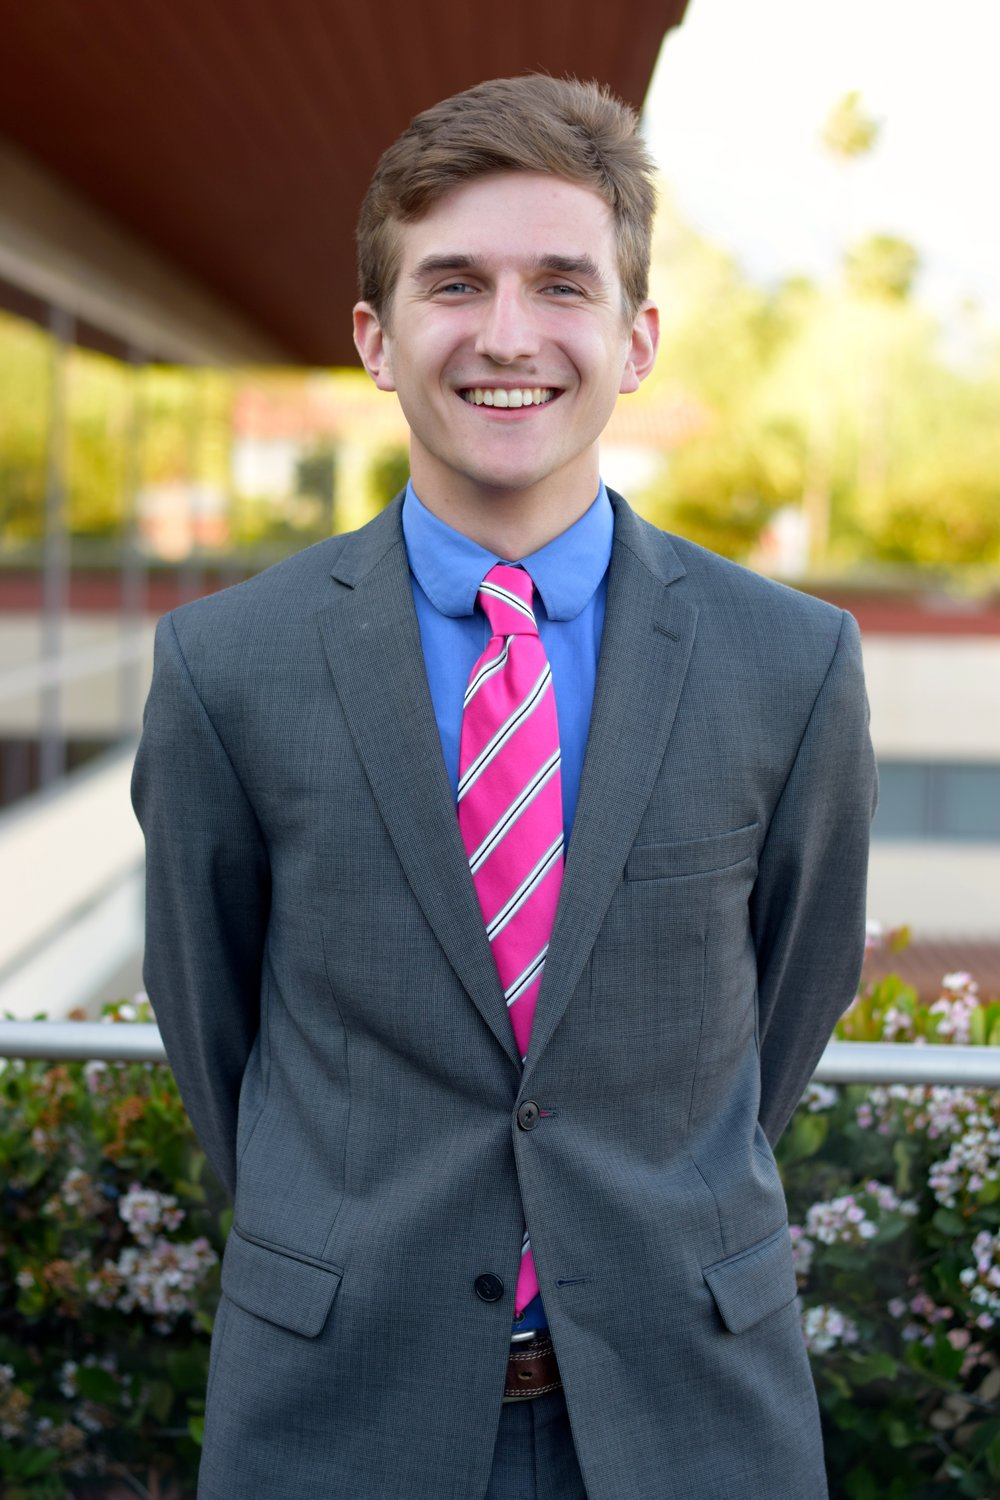 Chandler Koon - Vice President of Student Activities